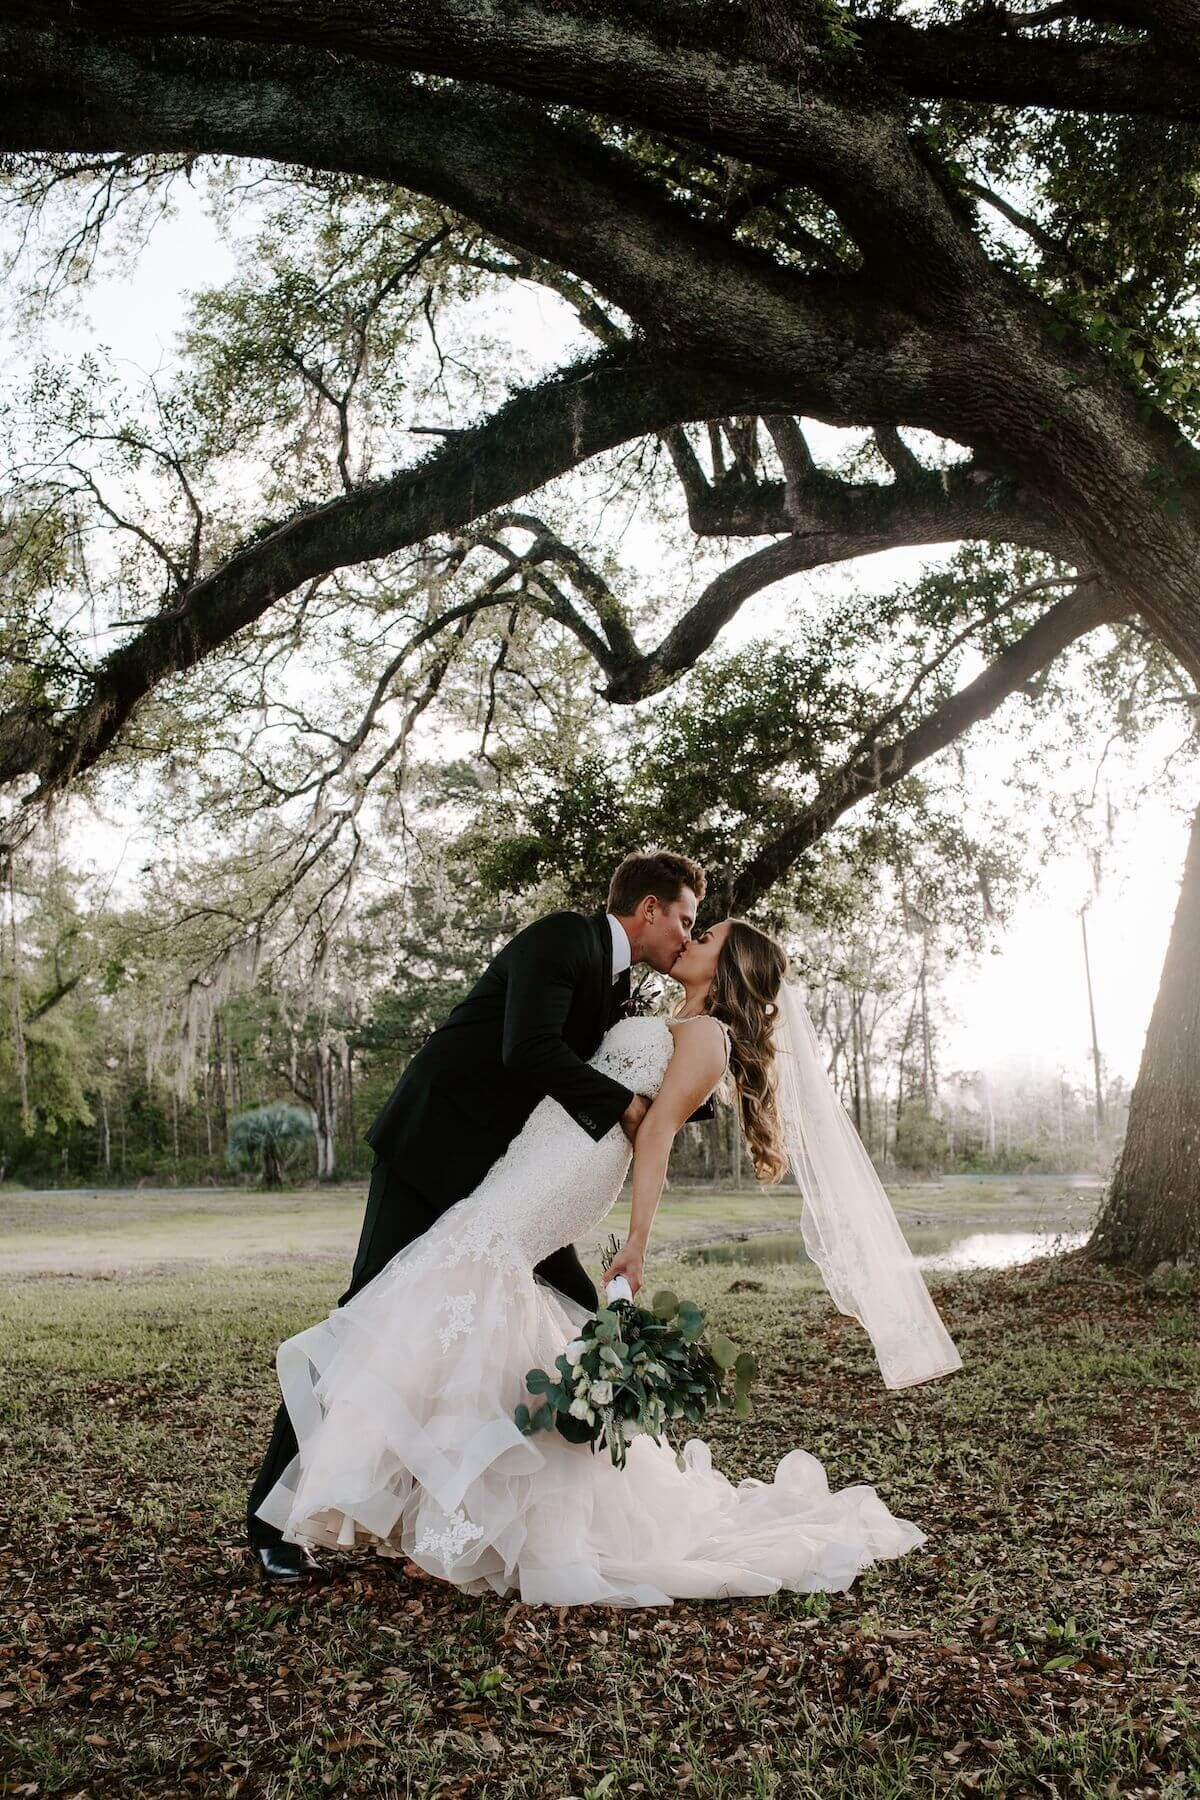 small Florida wedding newlywed groom dipping his bride under a large Florida tree. Audrey Darke Photography.